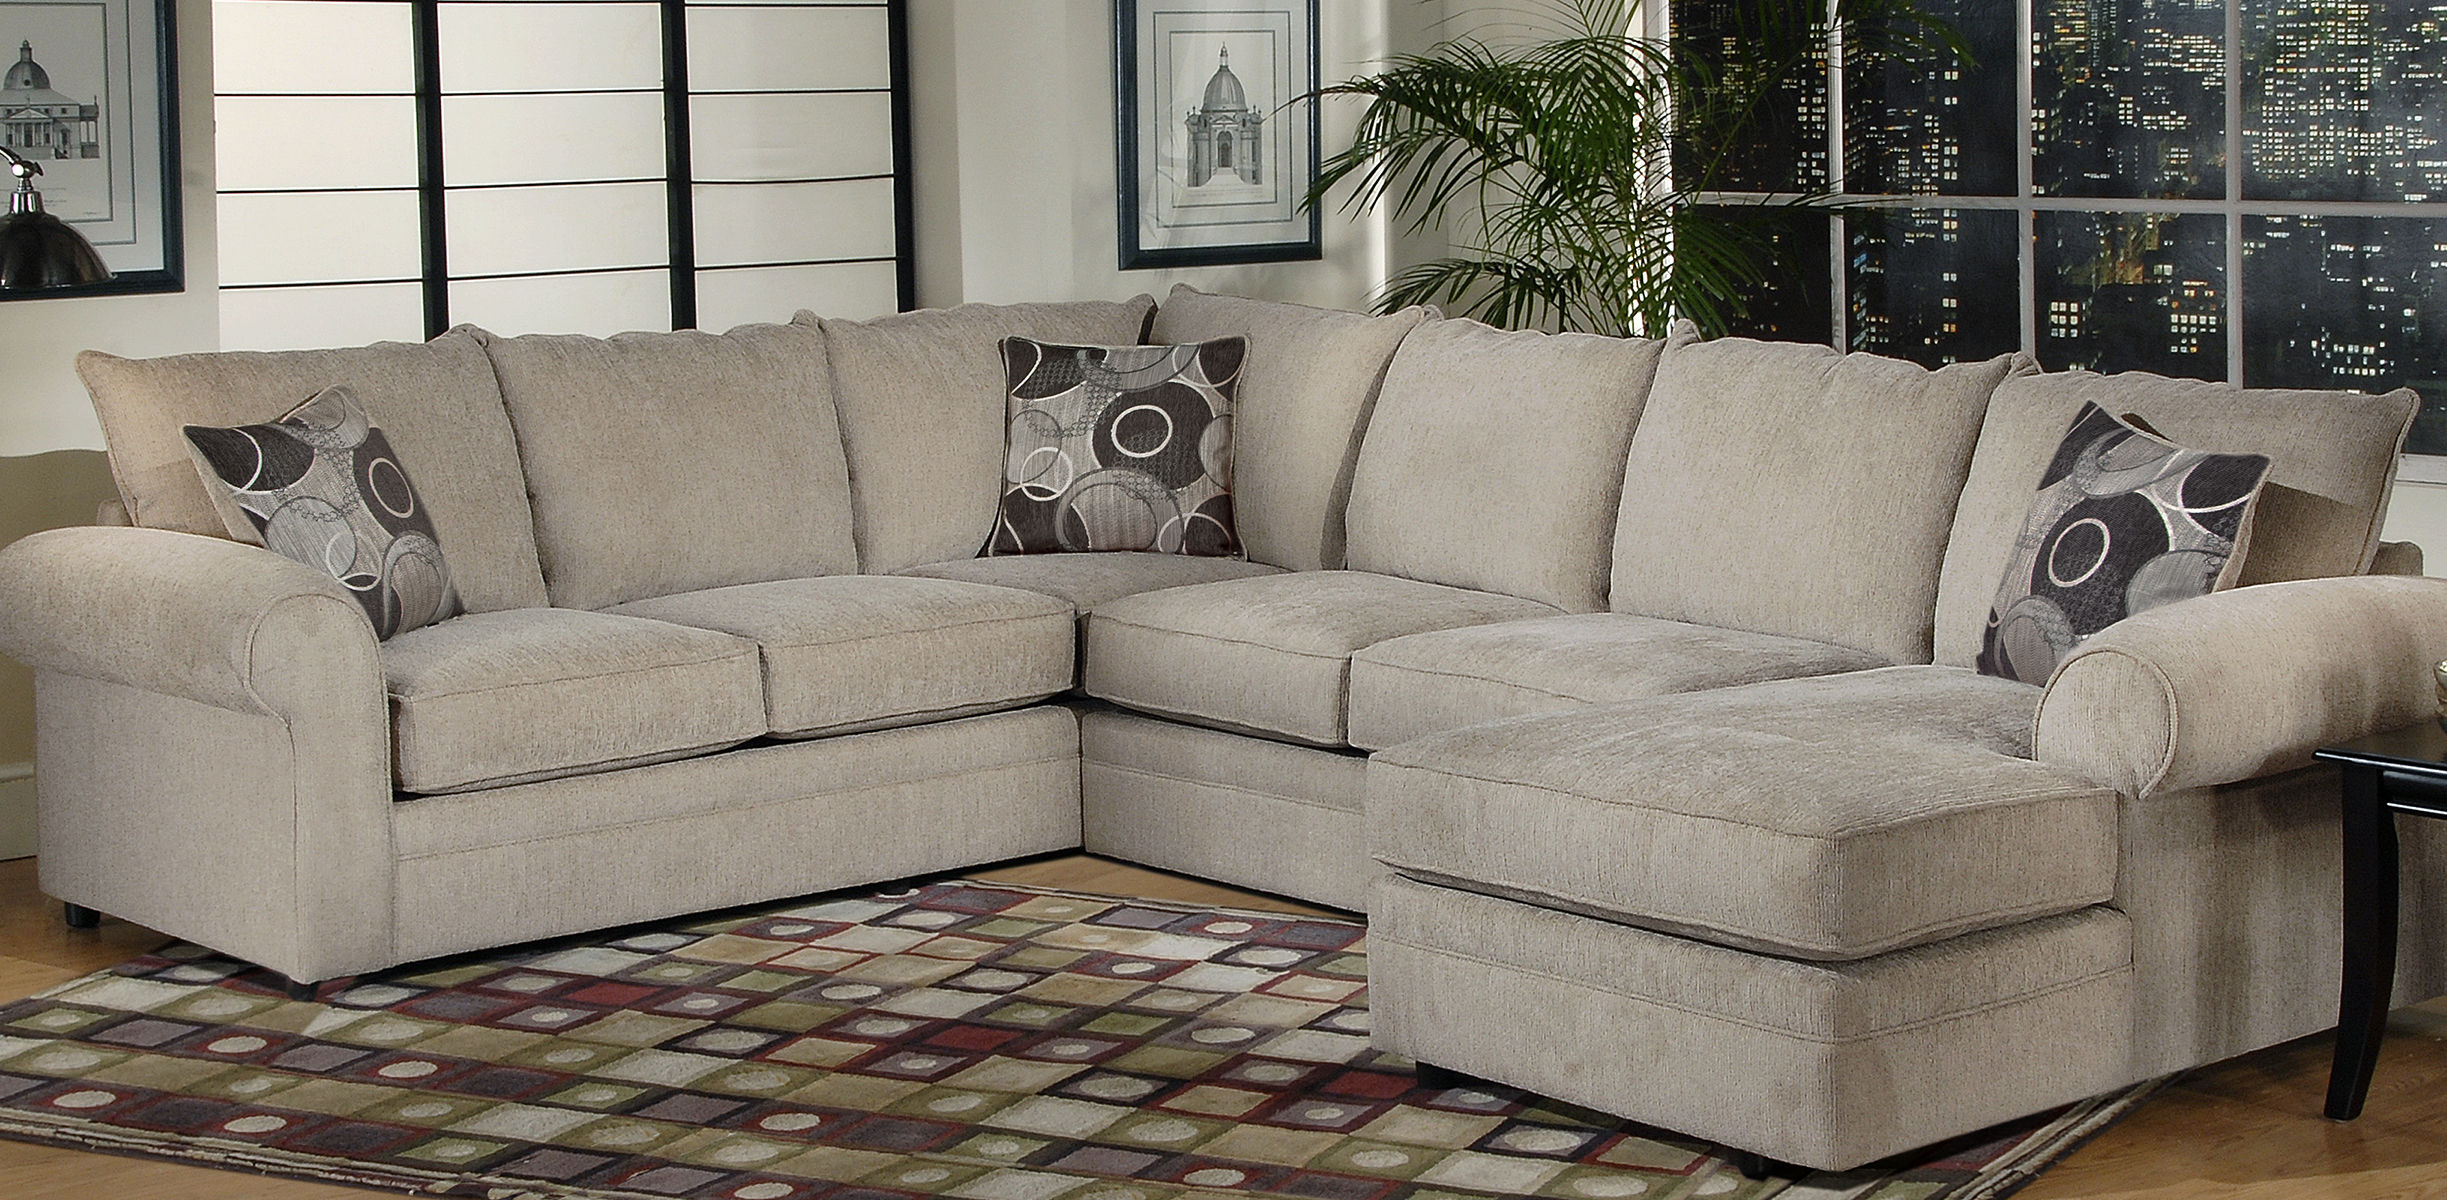 Serta Upholstery Sectionals: Ashas Spiritual Essence With Regard To Harmon Roll Arm Sectional Sofas (View 1 of 15)